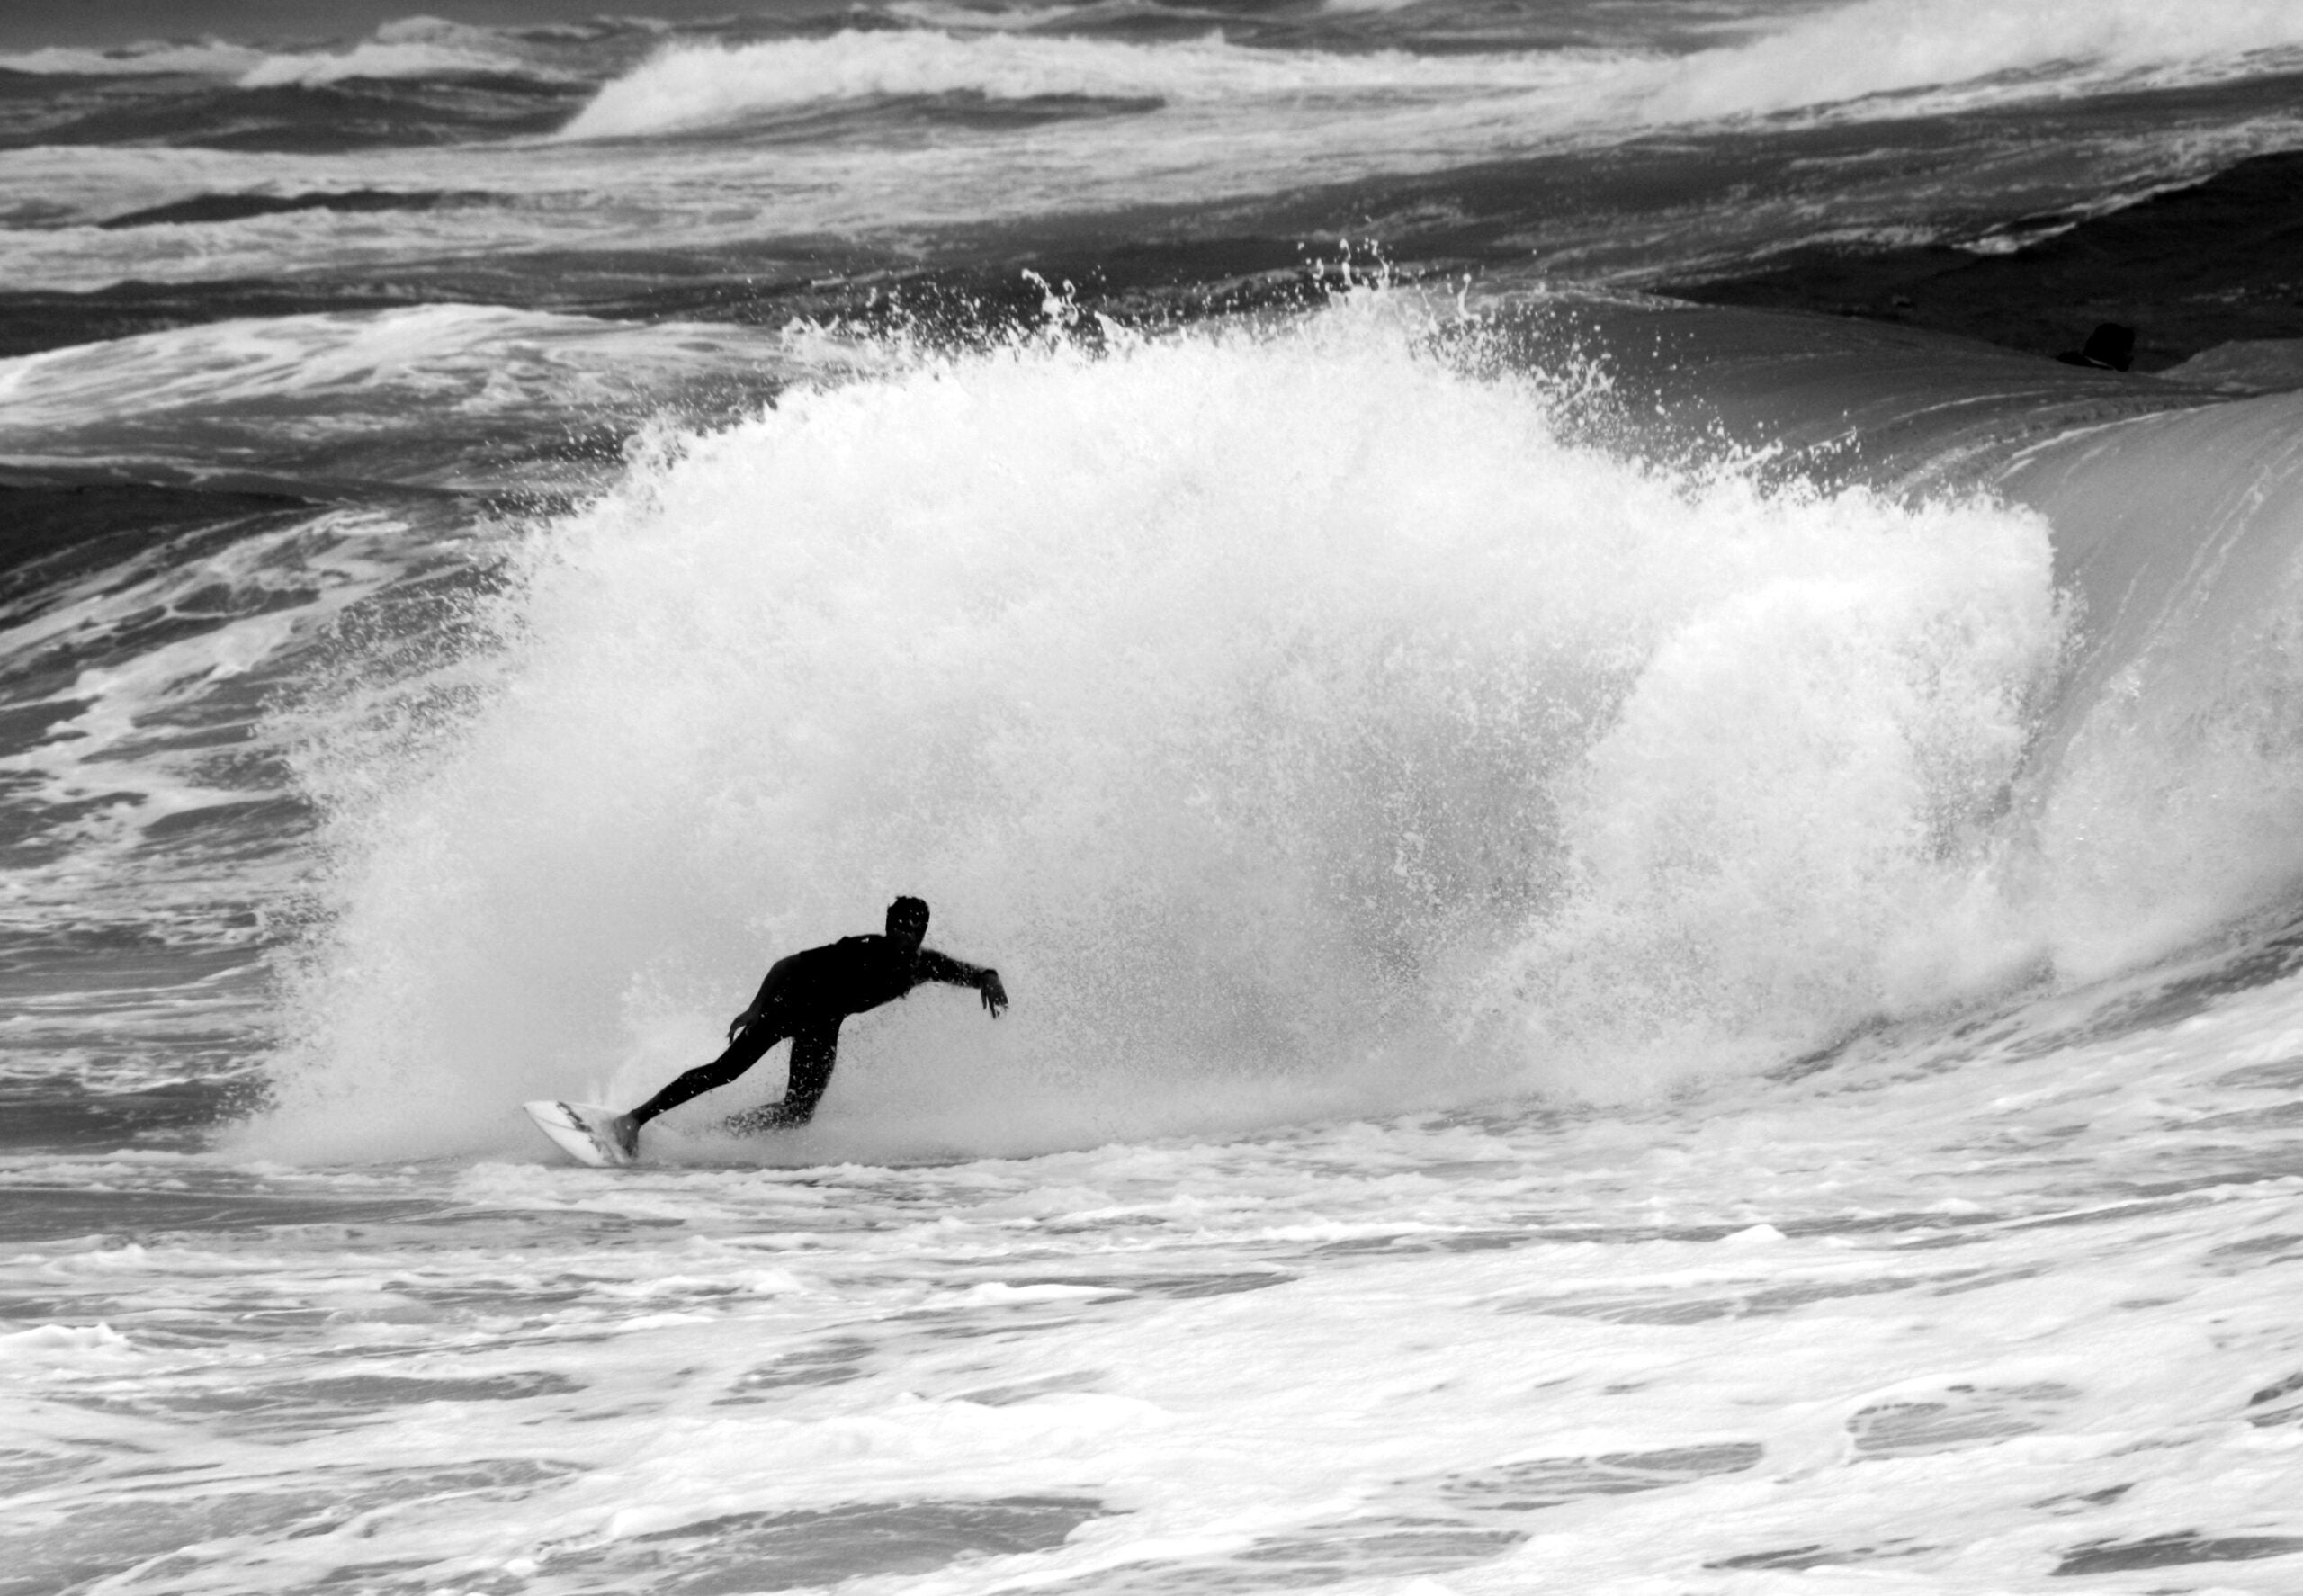 Surfers Can Catch Data While They're Catching Waves